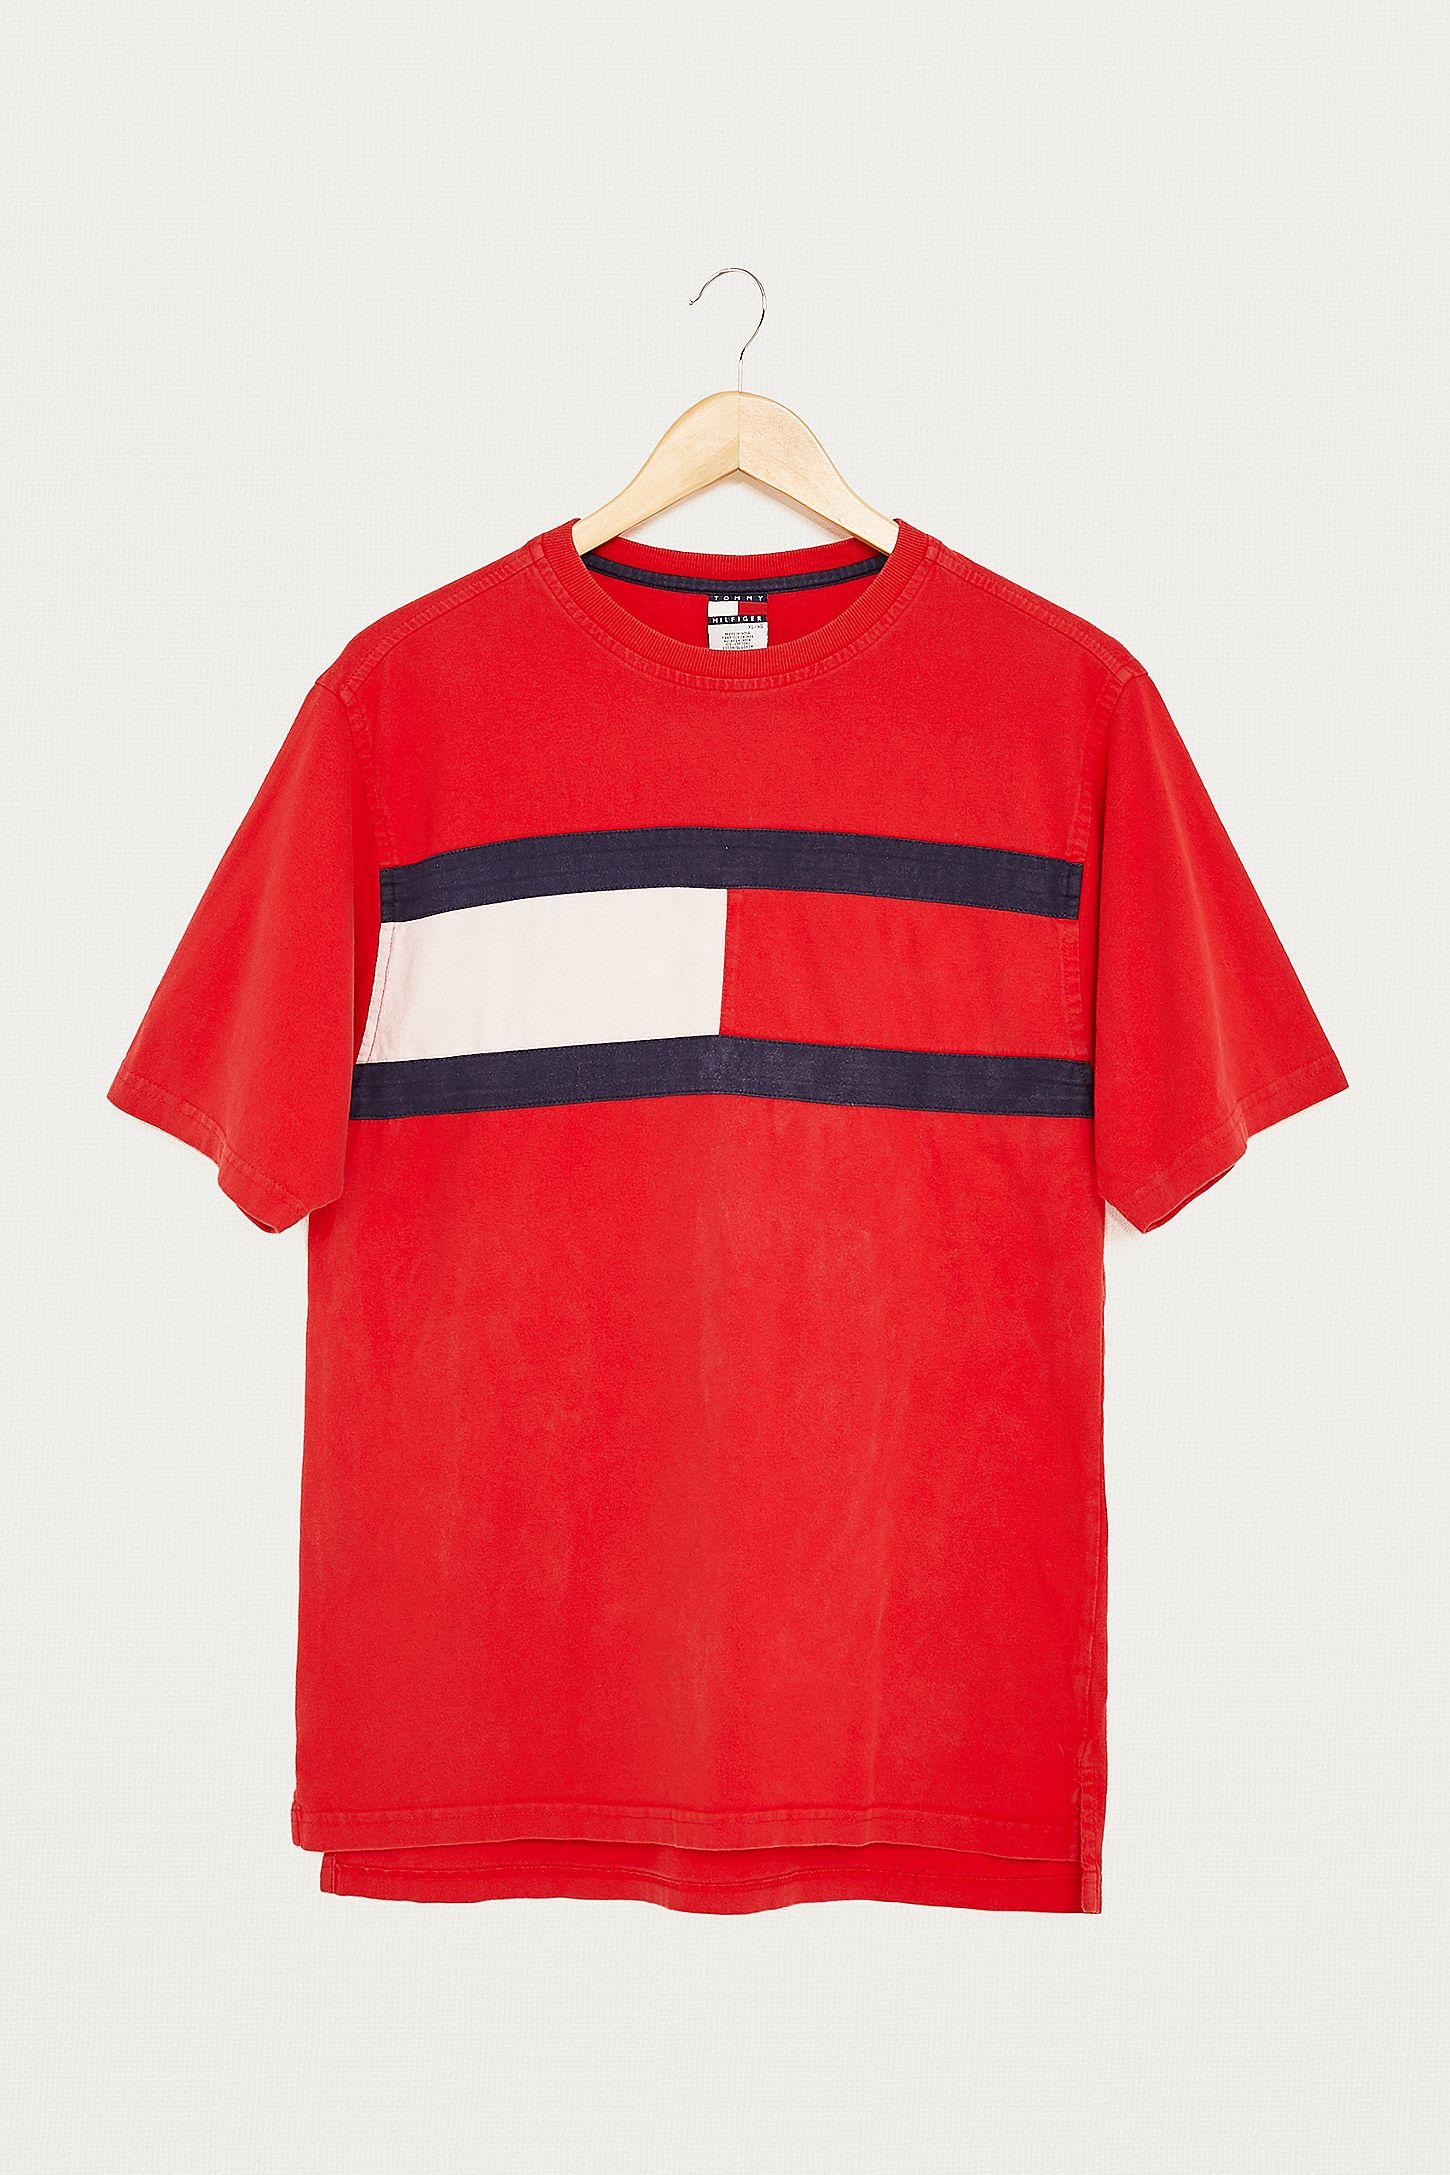 3c52eb67 Urban Renewal Vintage One-of-a-Kind Tommy Hilfiger T-Shirt. Click on image  to zoom. Hover to zoom. Double Tap to Zoom